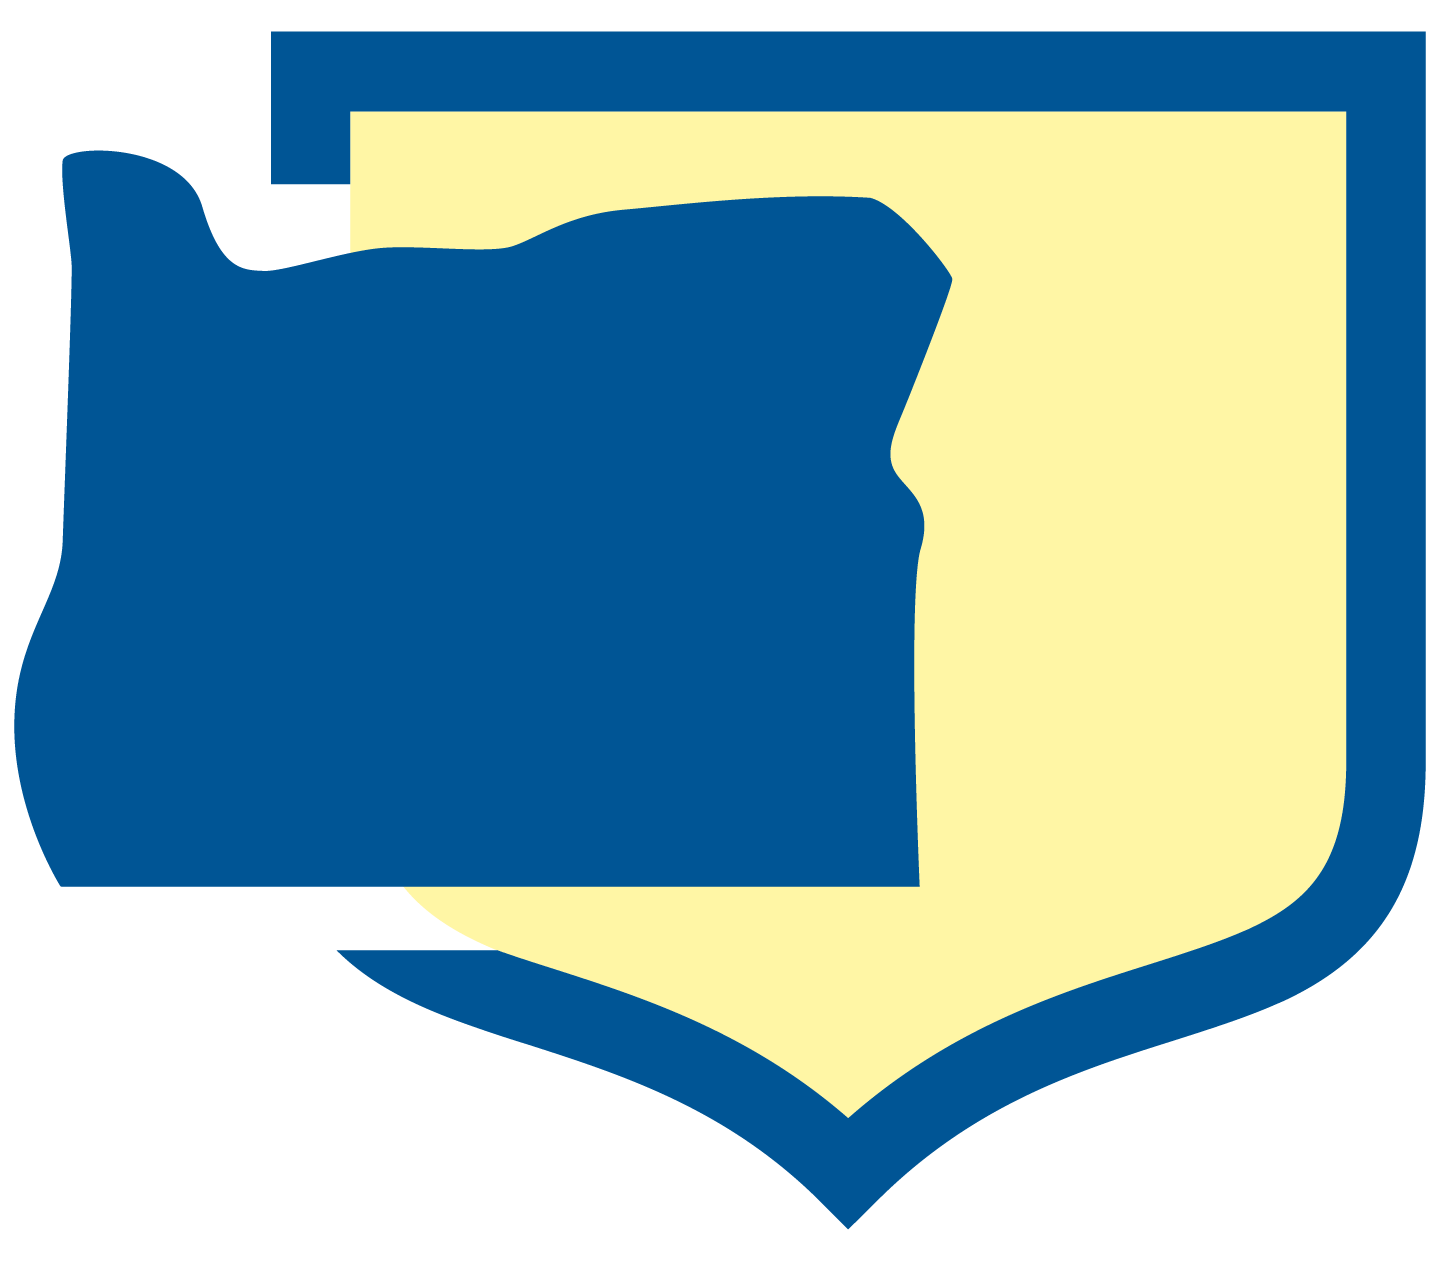 Oregon Health Insurance Marketplace logo